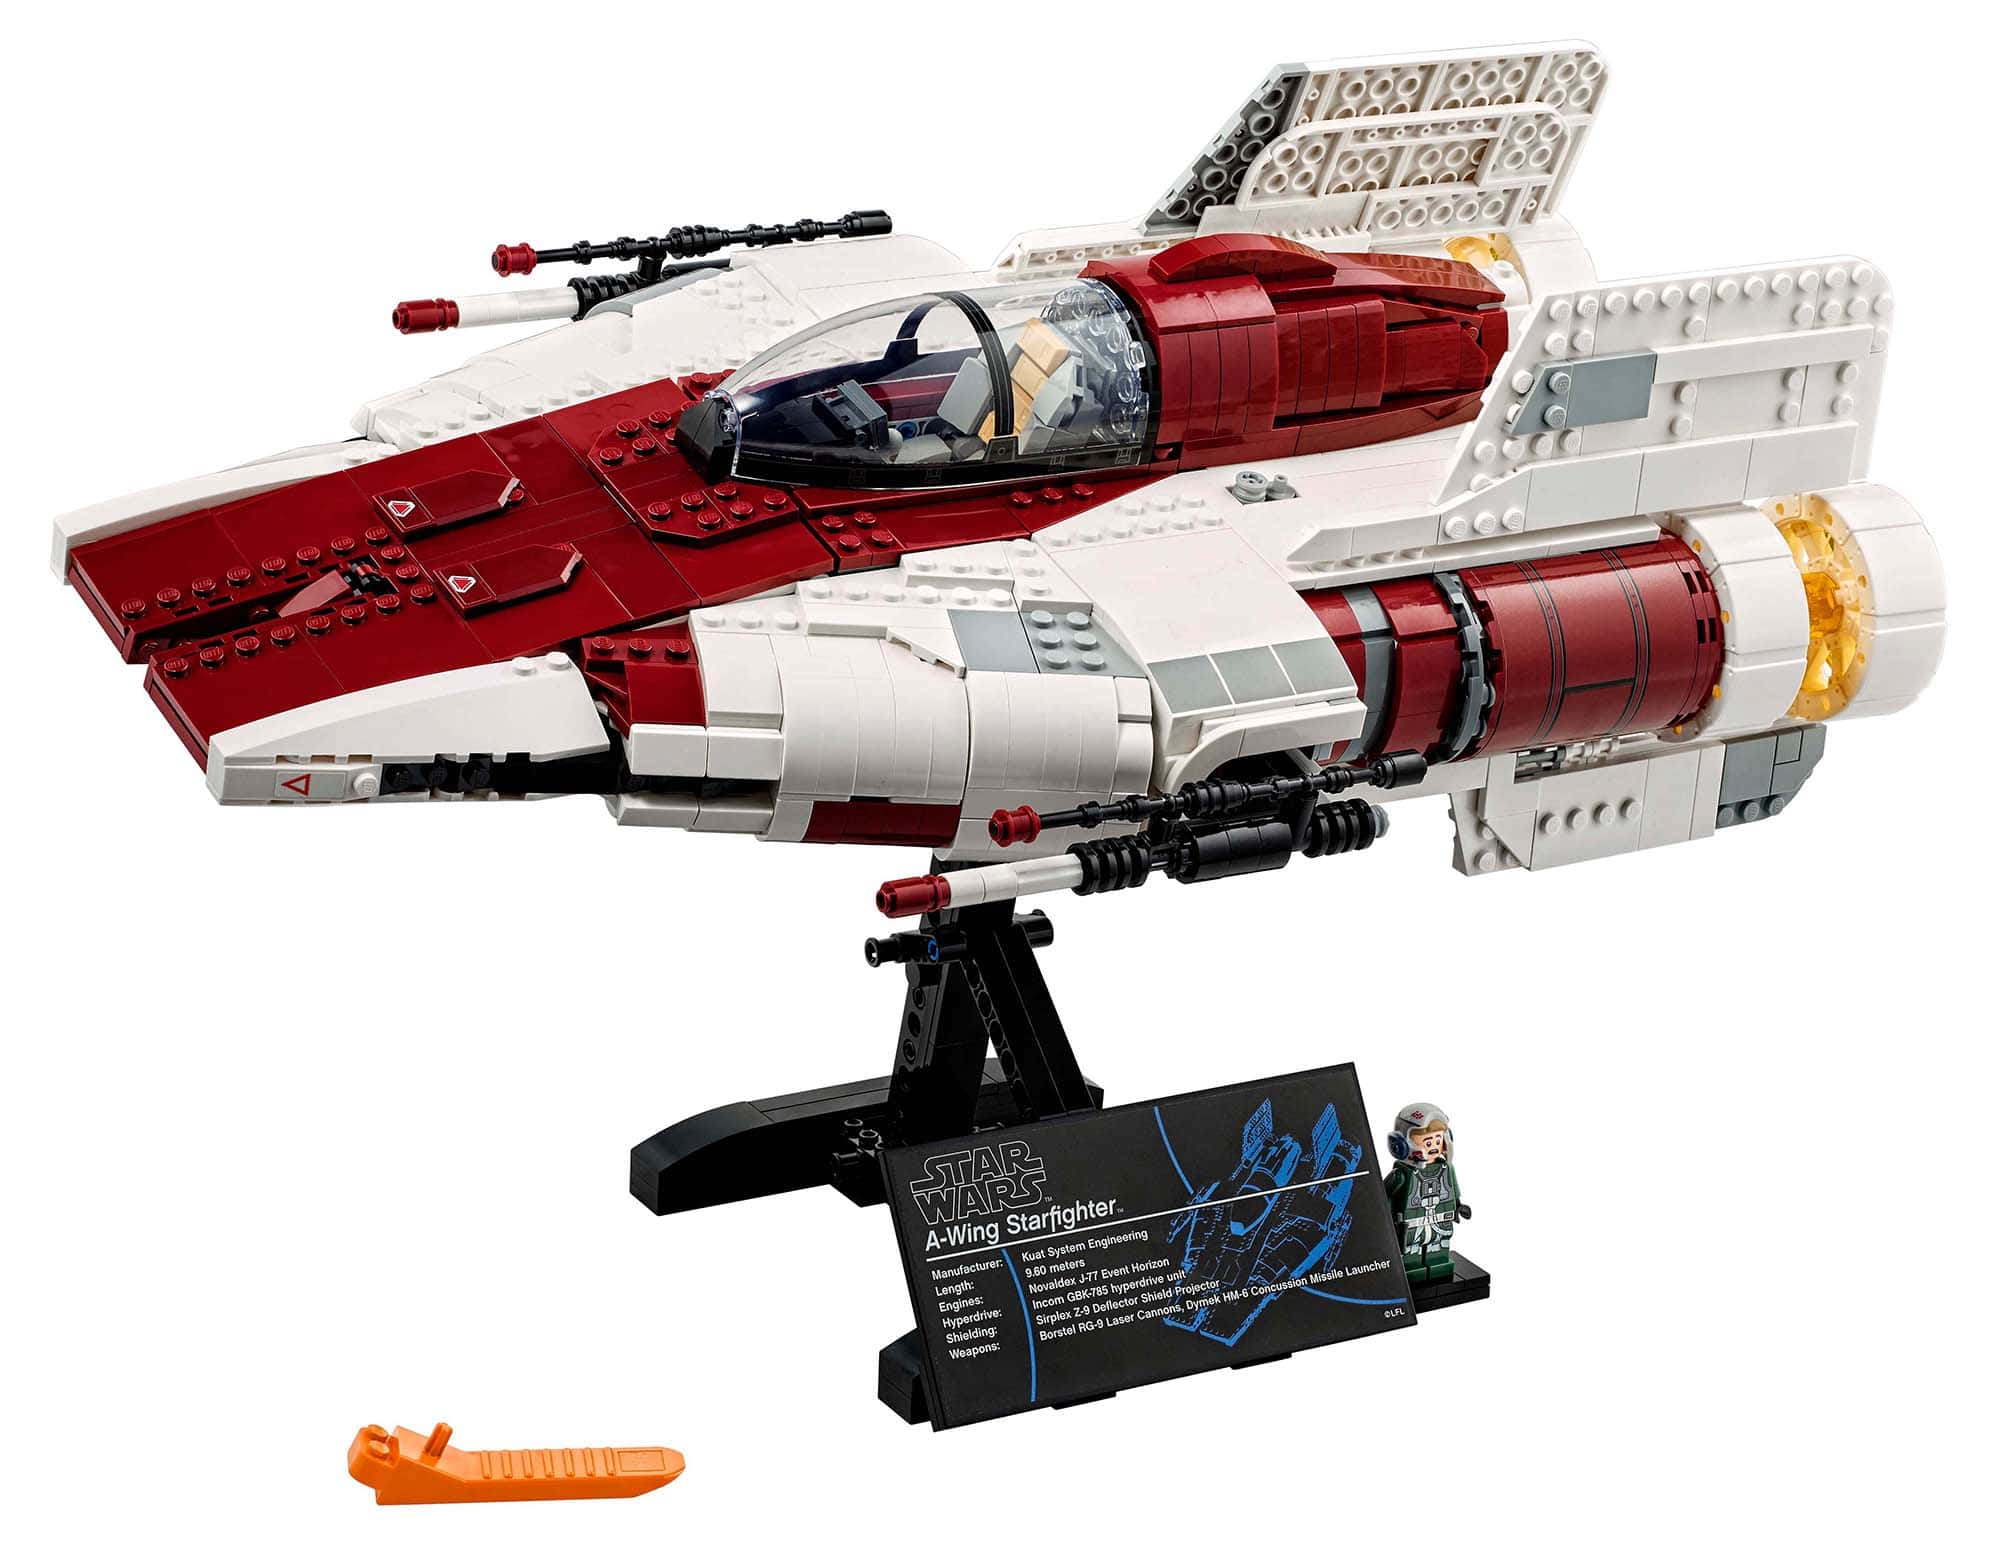 LEGO Star Wars 75275 UCS A-Wing Starfighter